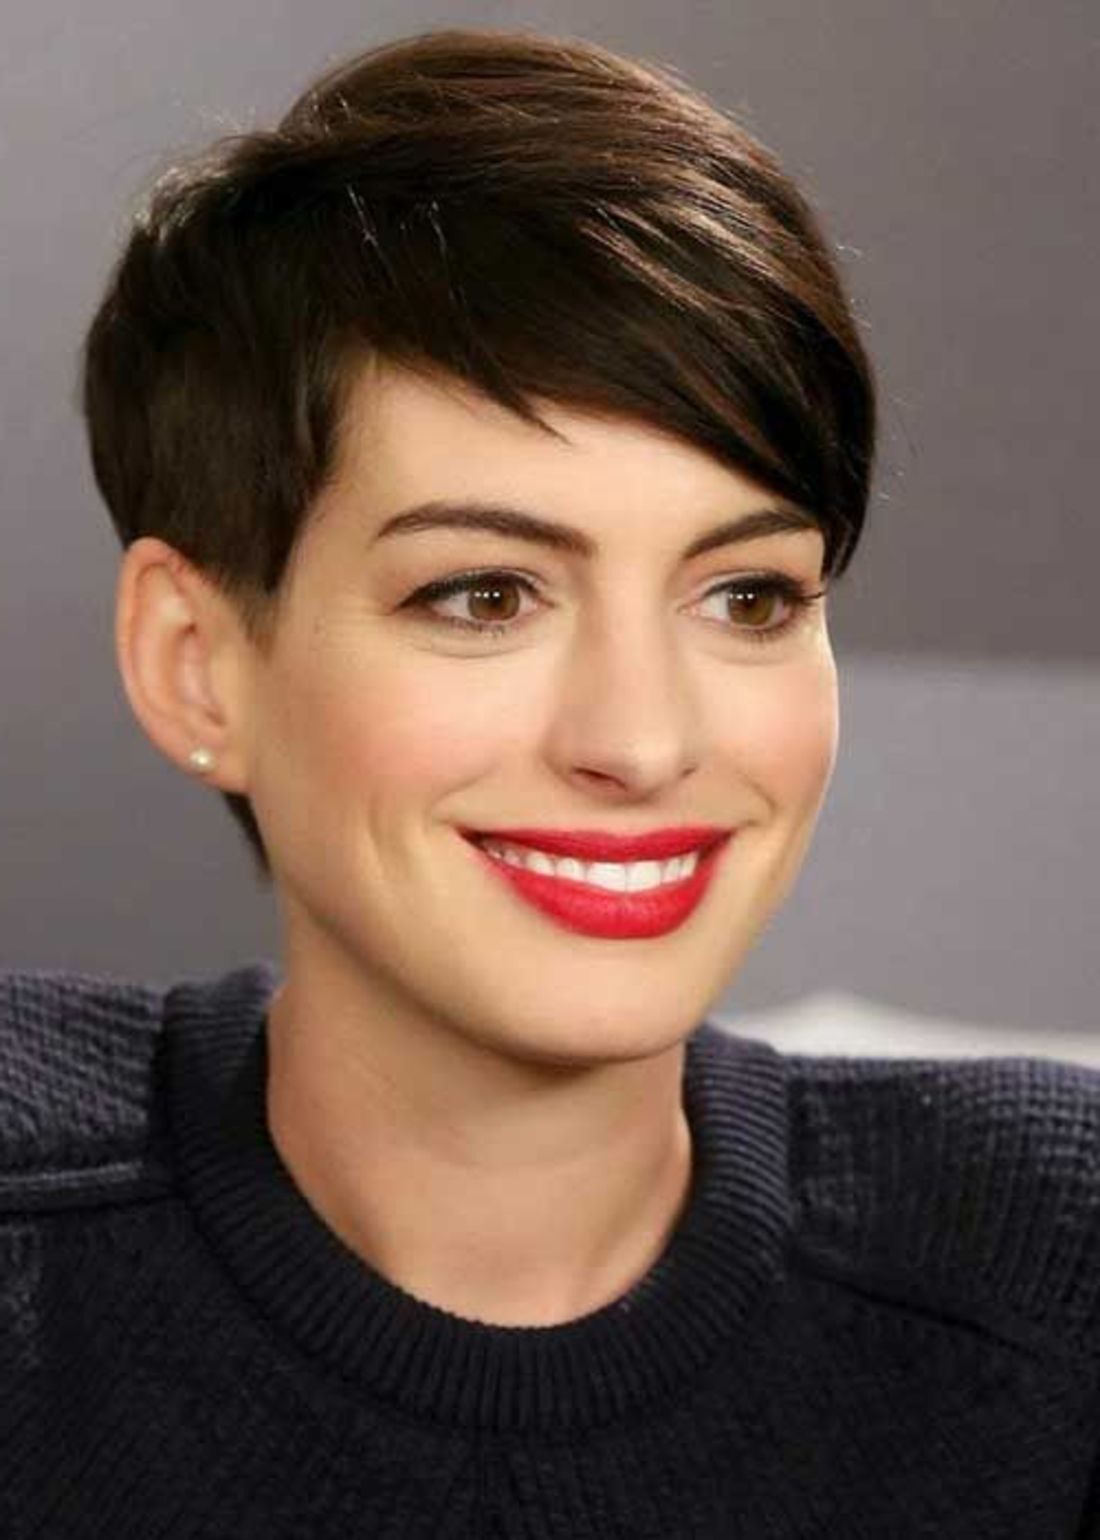 anne hathaway kurze haare und rote lippenstift undercut frisuren frauen kurze haare frise. Black Bedroom Furniture Sets. Home Design Ideas